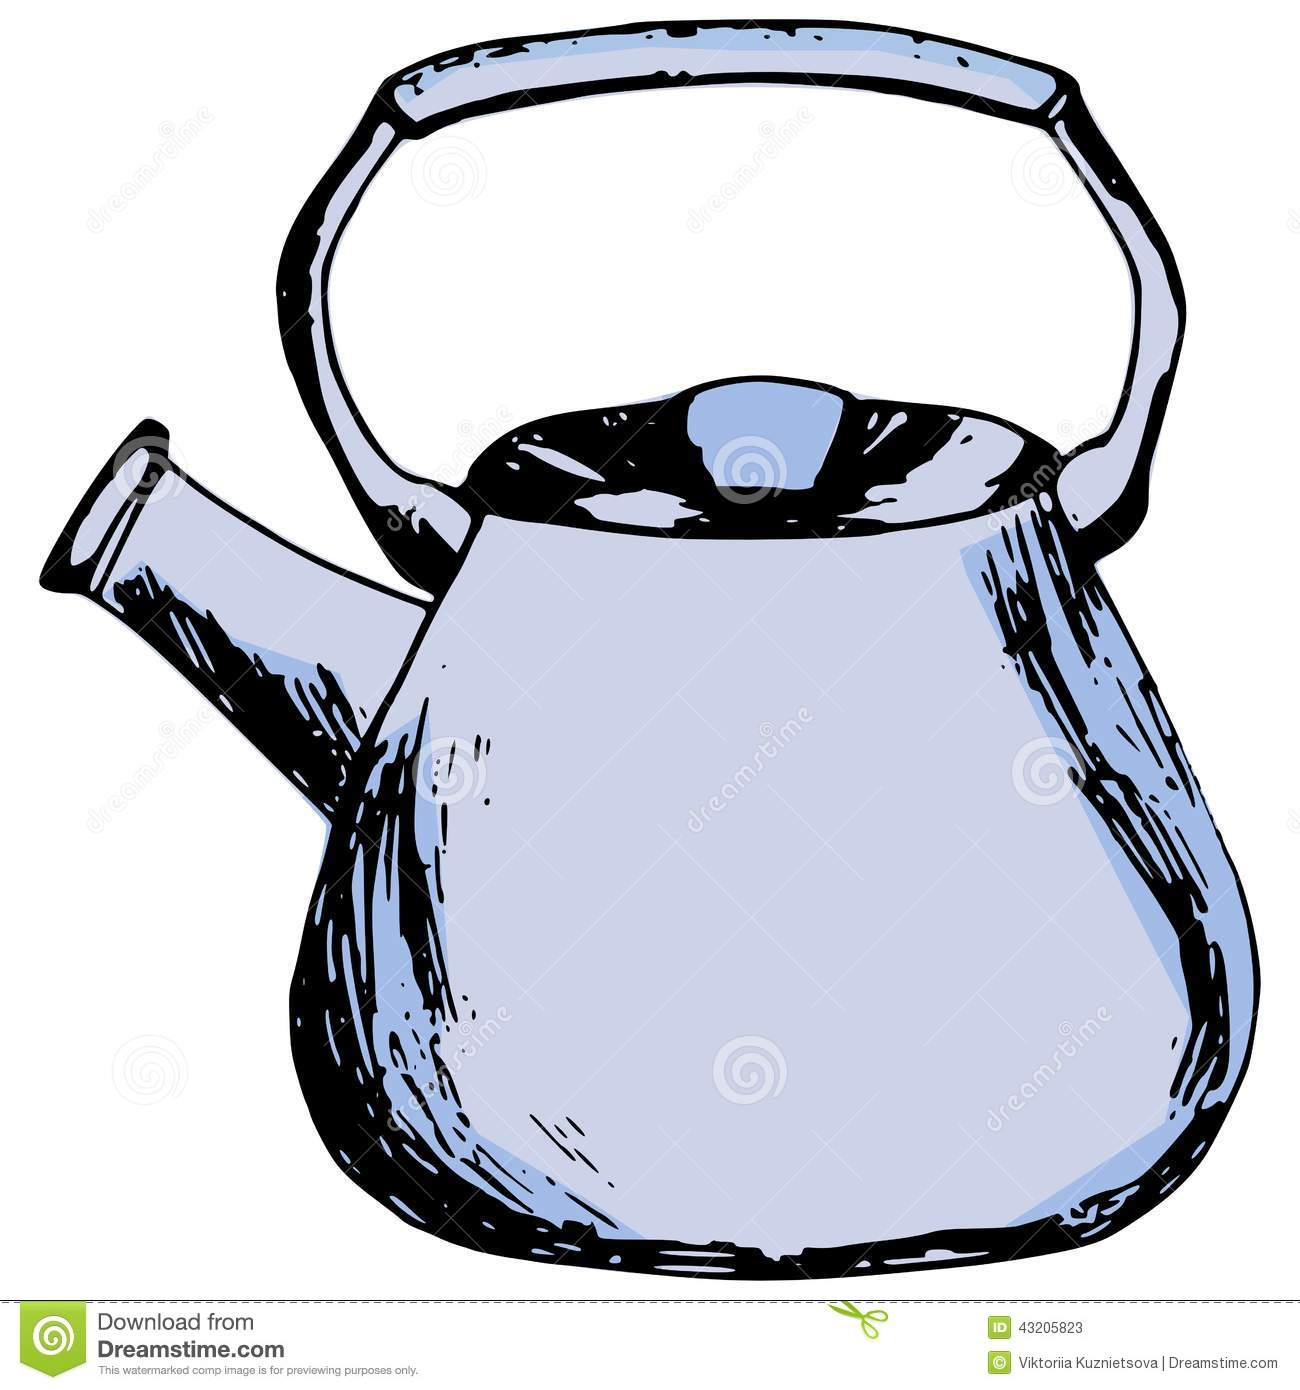 Download Kettle vektor illustrationer. Illustration av gammalt - 43205823